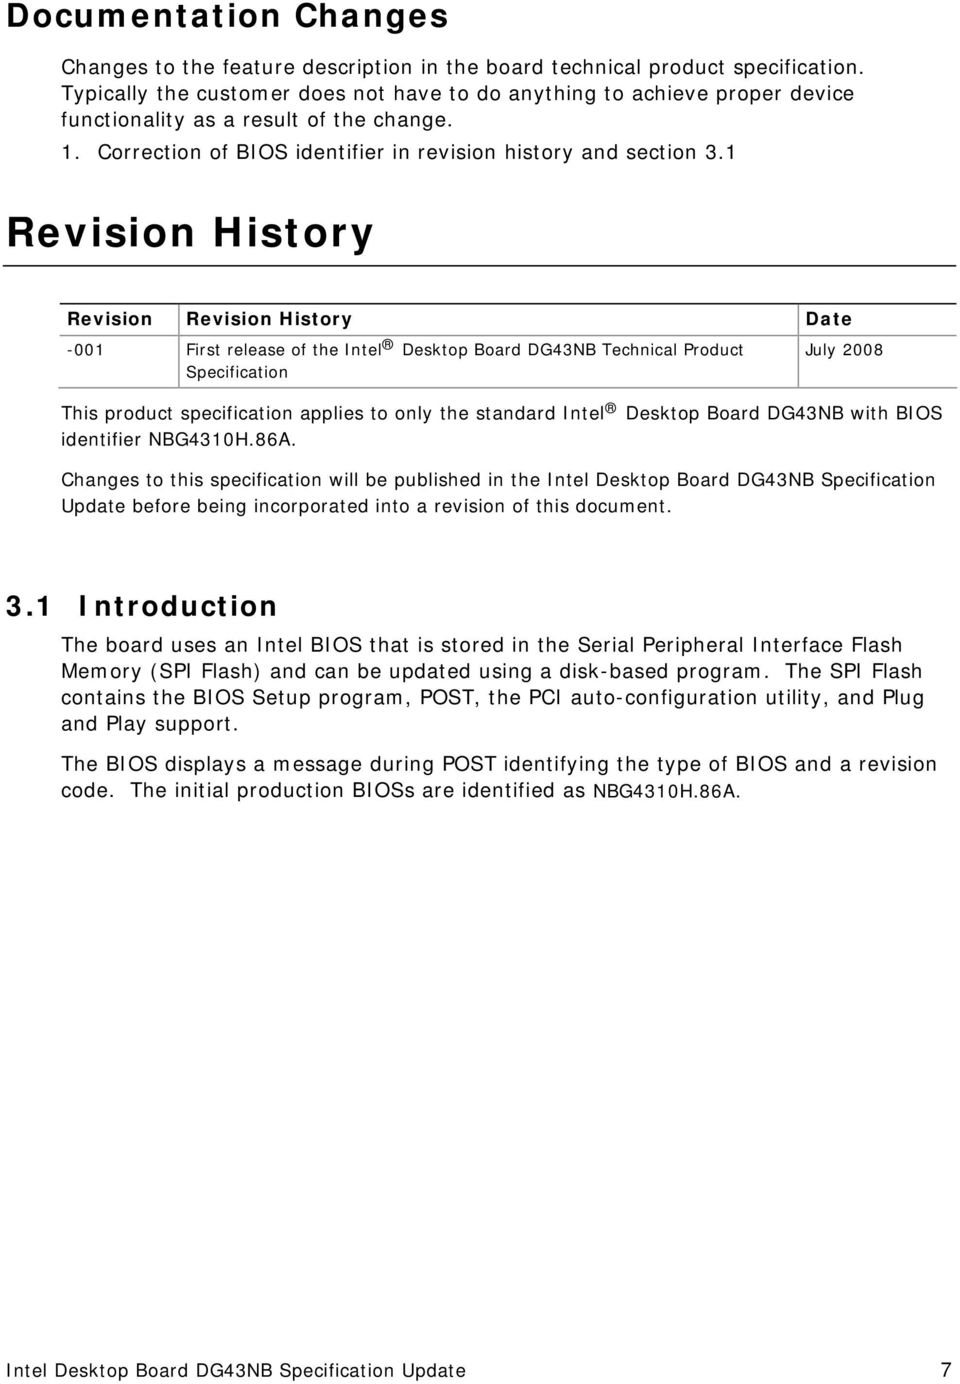 1 Revision History Revision Revision History Date -001 First release of the Intel Desktop Board DG43NB Technical Product July 2008 Specification This product specification applies to only the